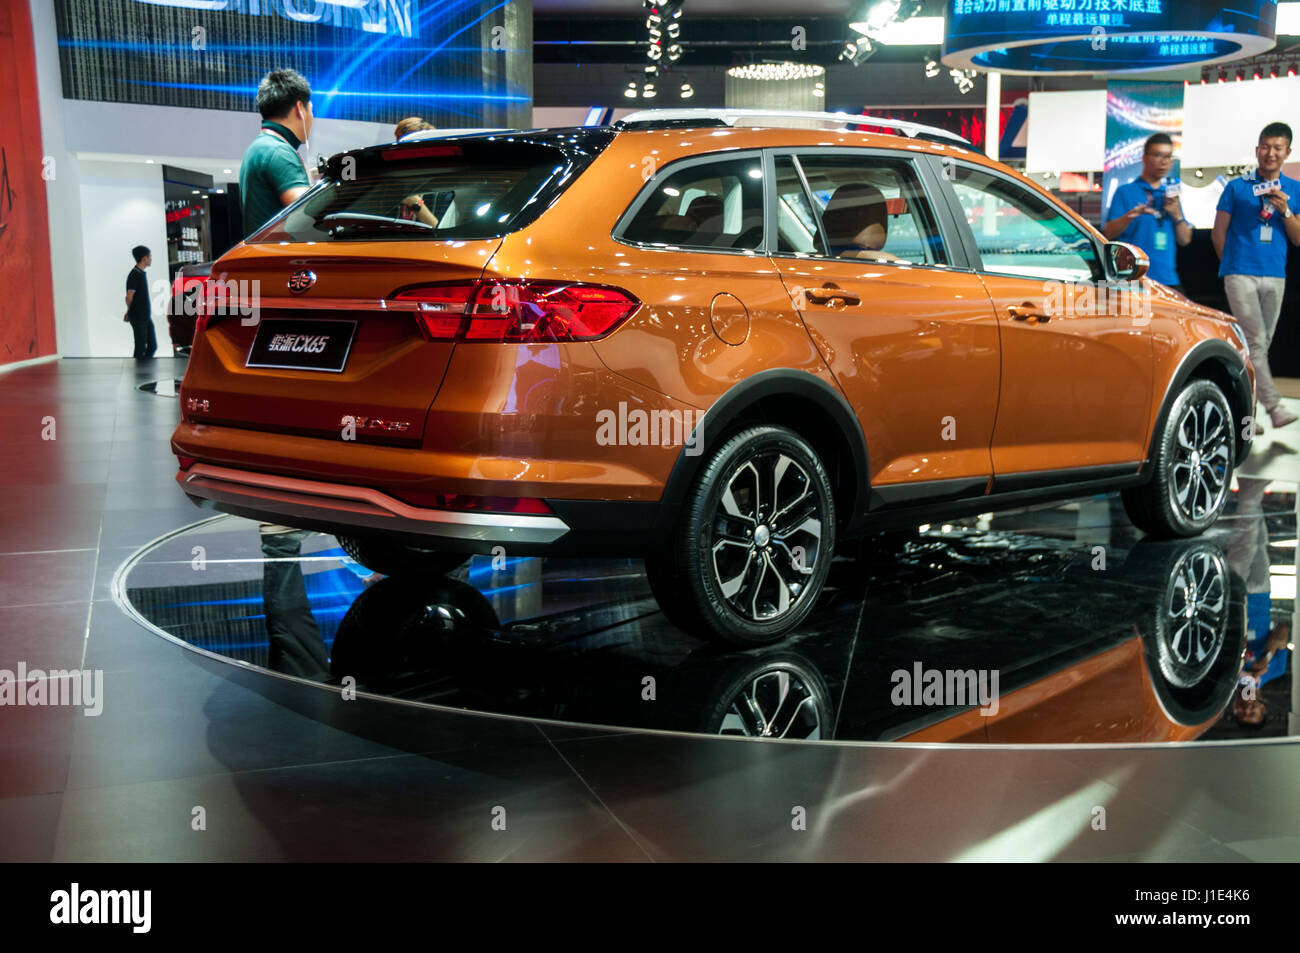 Faw china stock photos faw china stock images alamy - Shanghai auto show ...